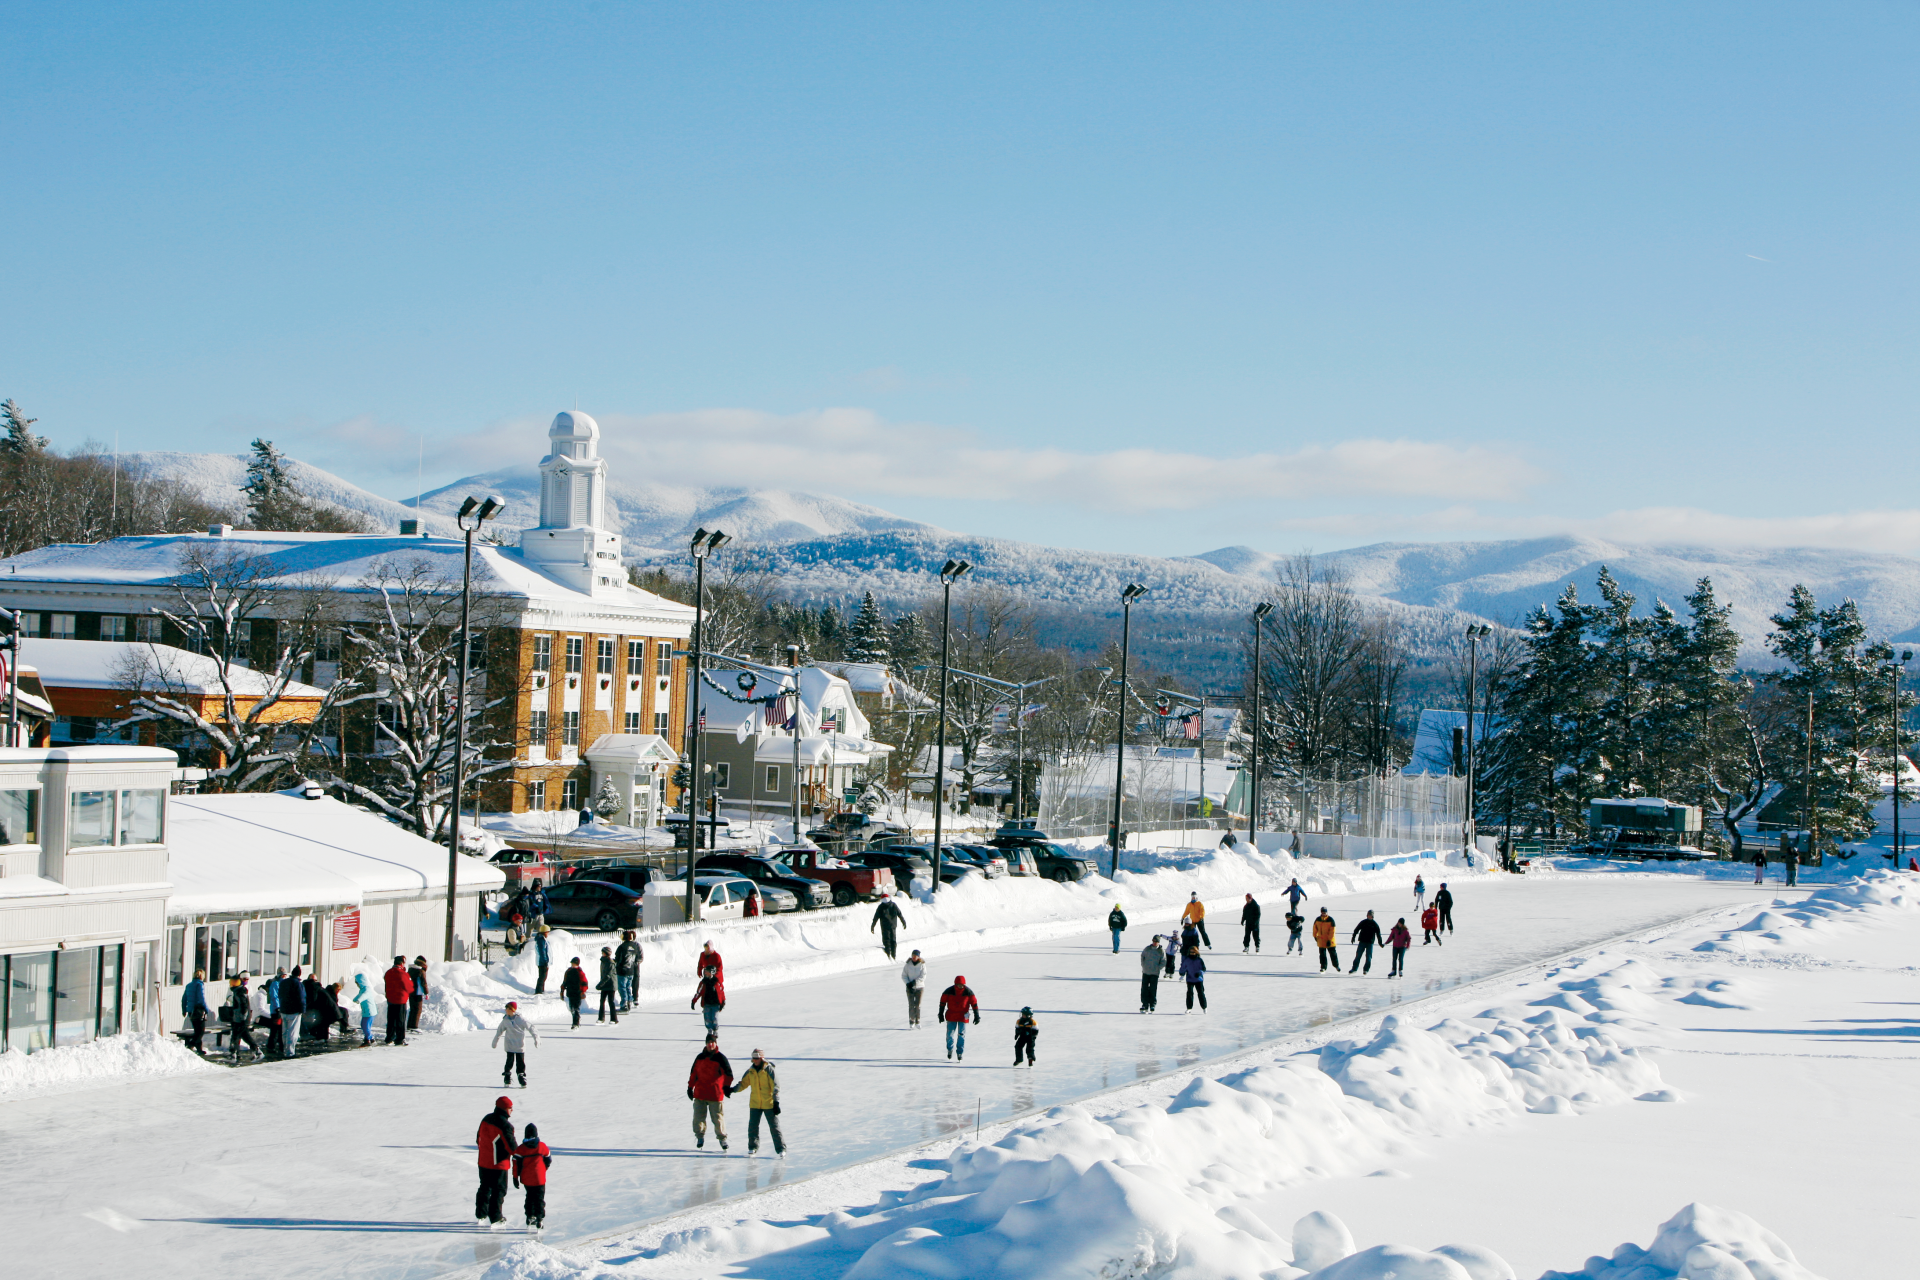 Residents and visitors at the ice skating oval in Lake Placid, New York. Photo by Nancie Battaglia.